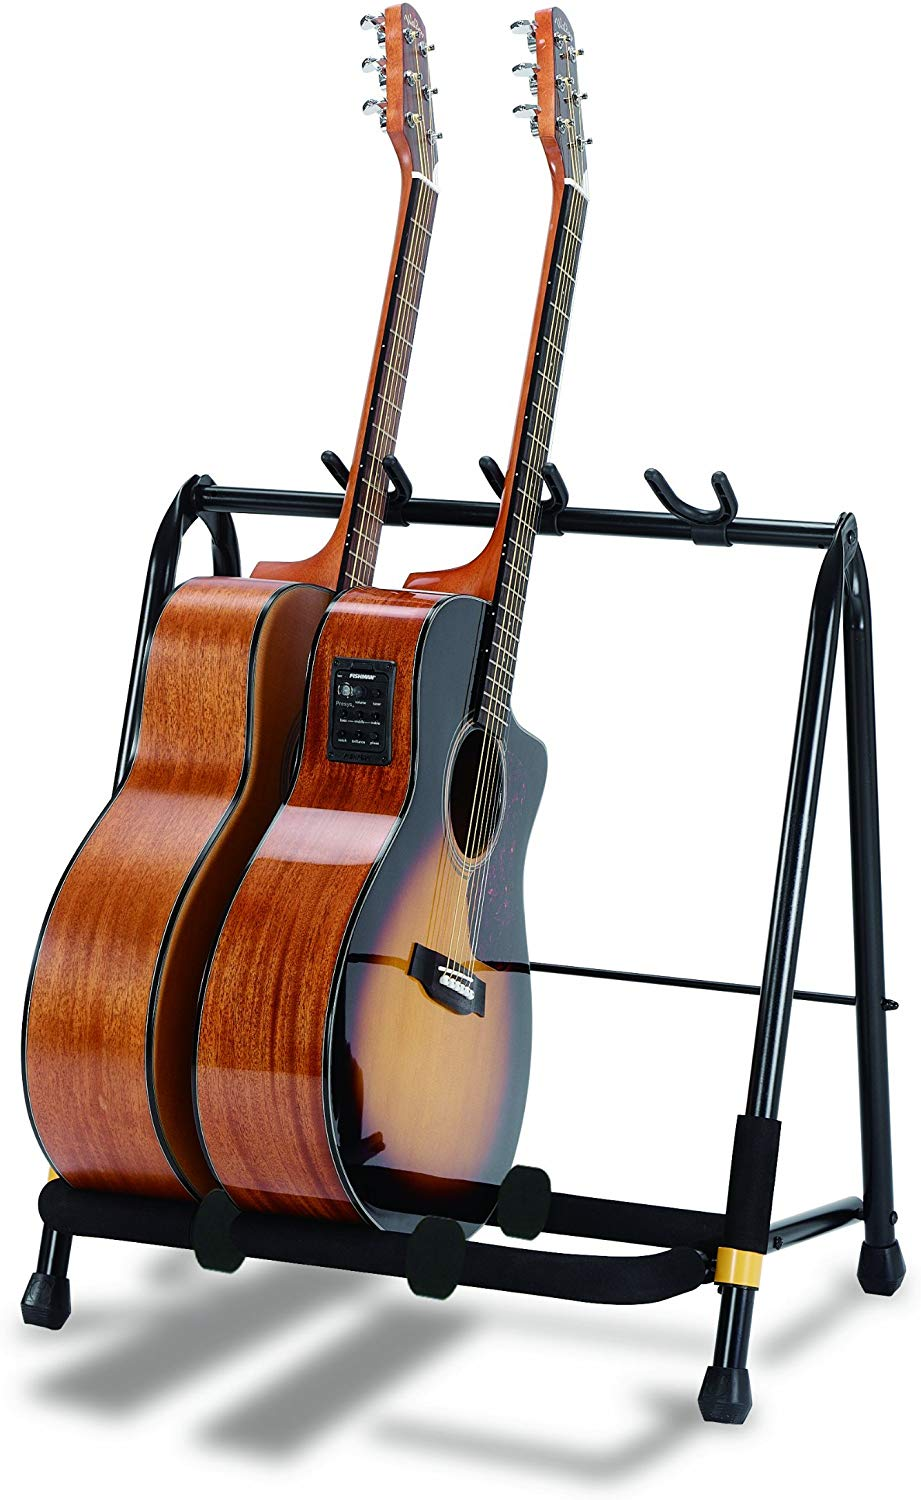 Hercules GS523B Three-Instrument Guitar Rack